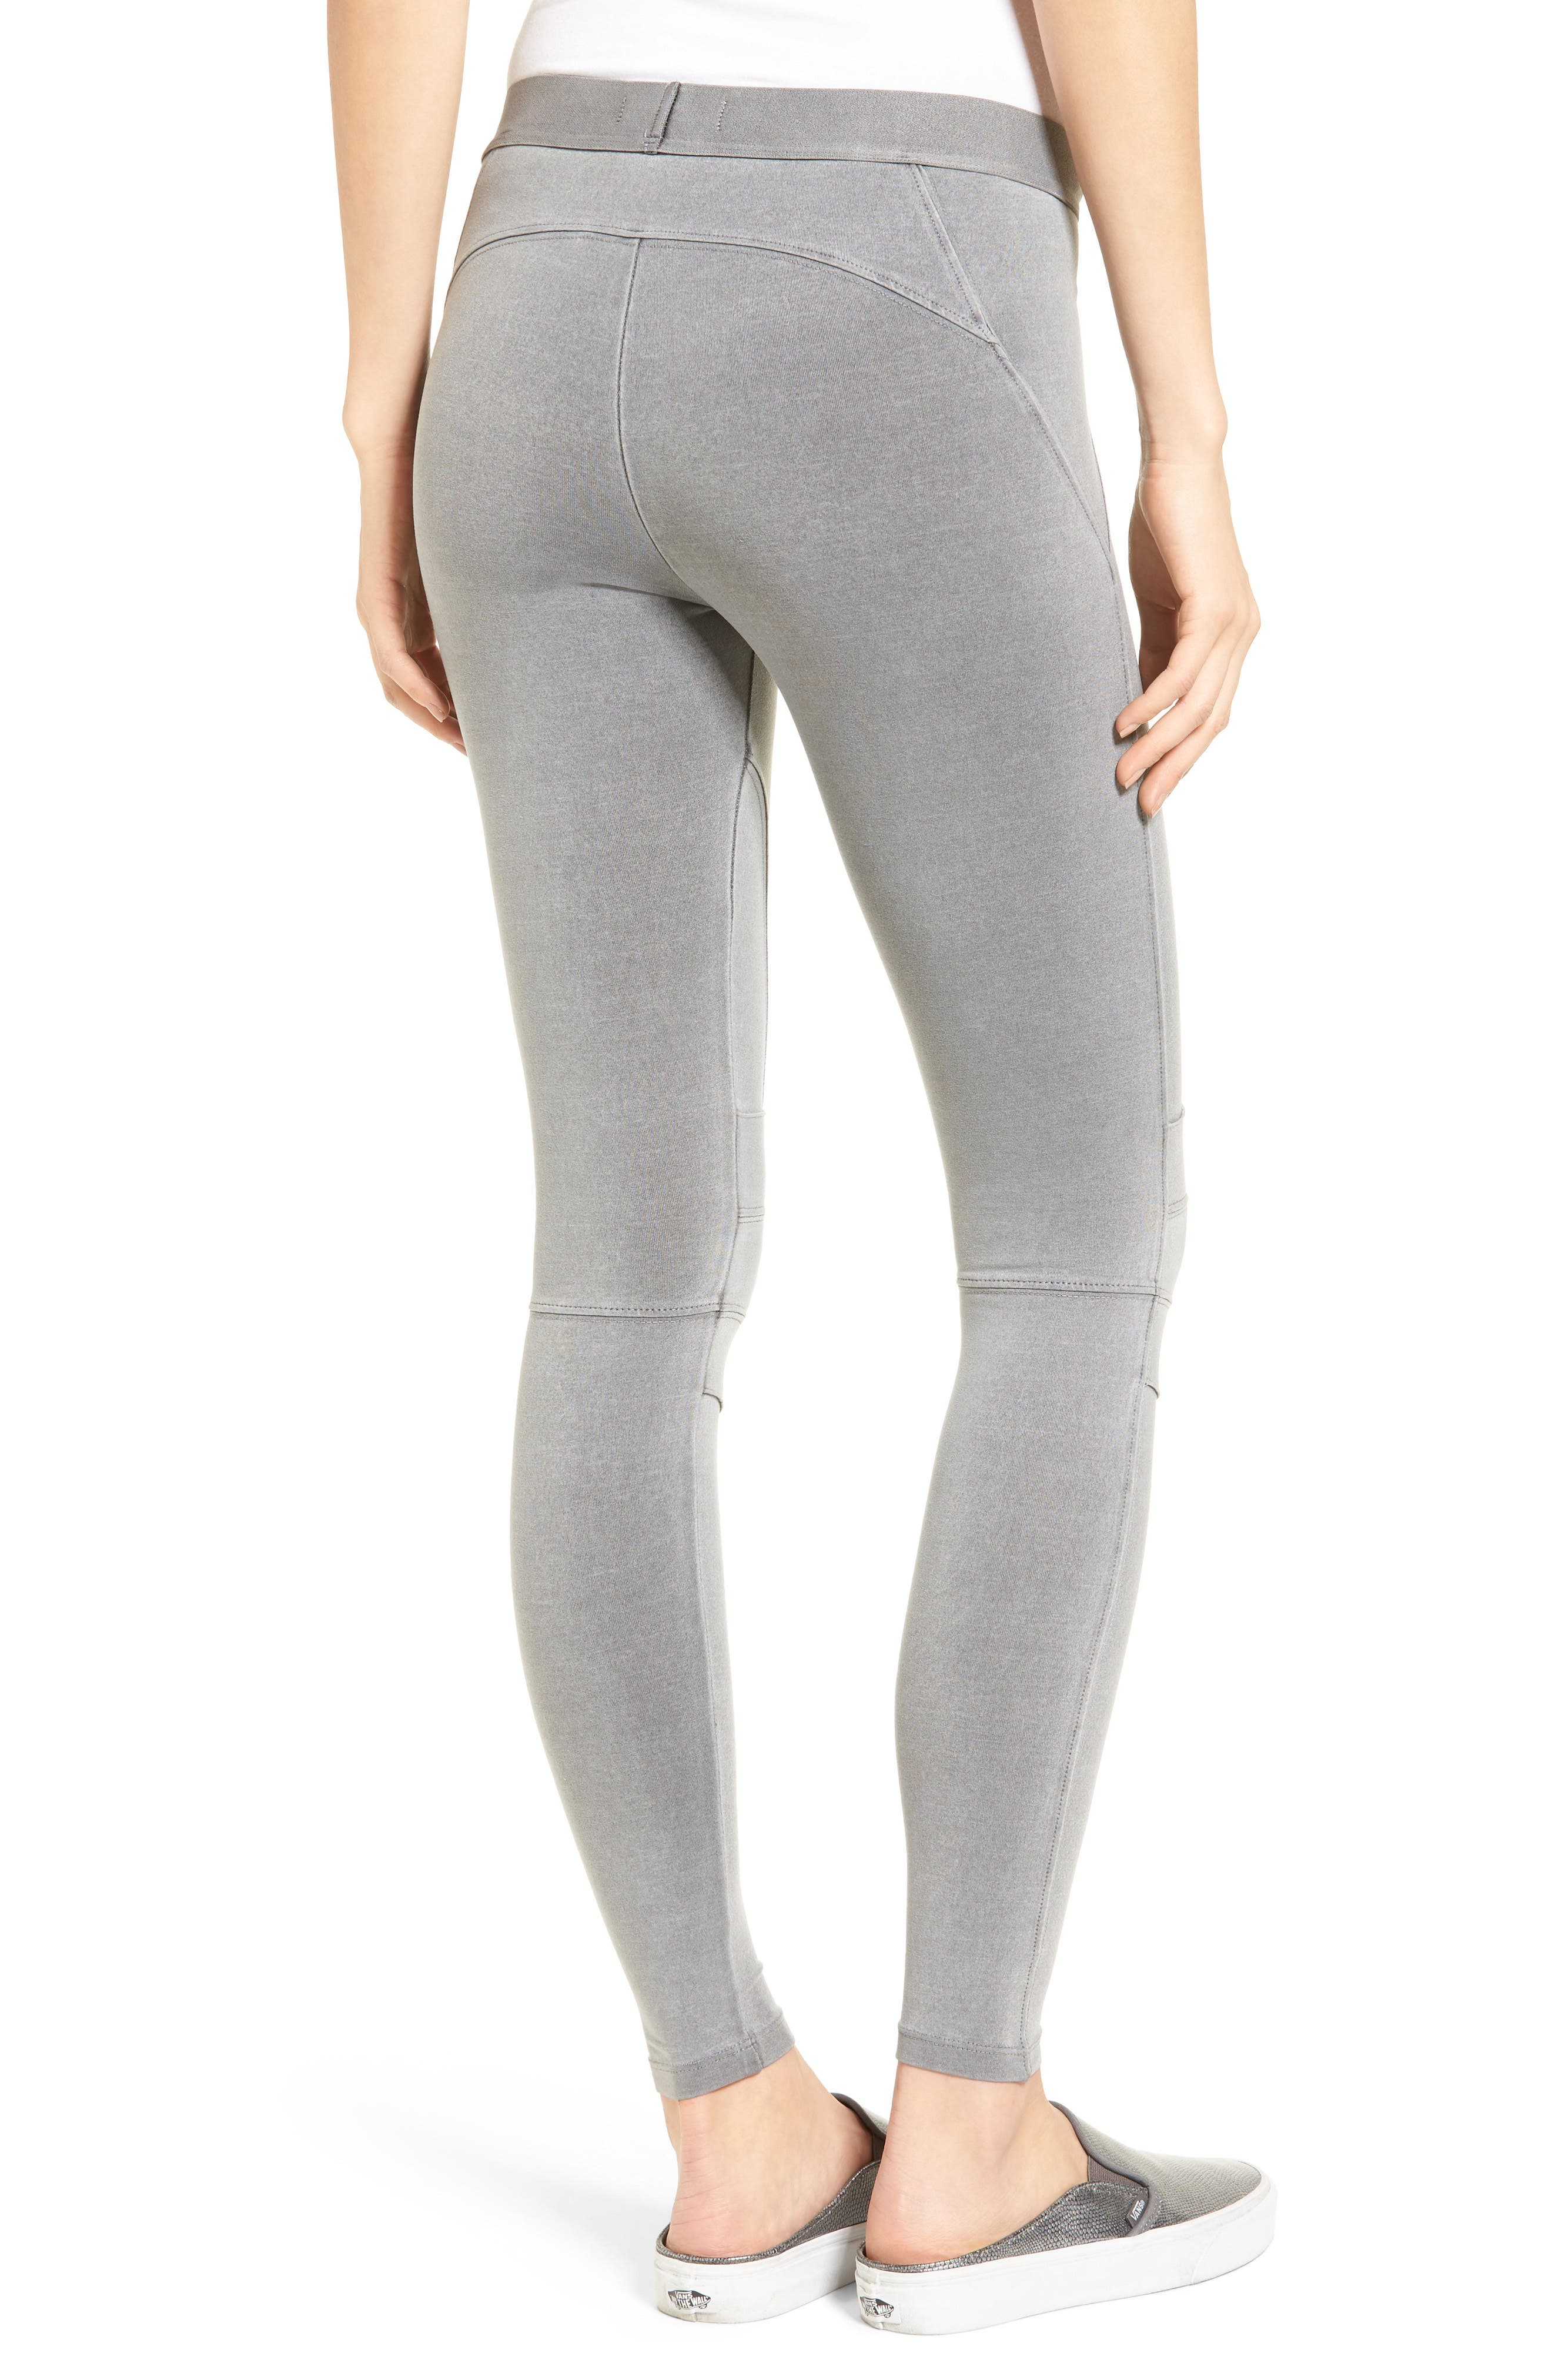 Moto Leggings,                             Alternate thumbnail 2, color,                             037